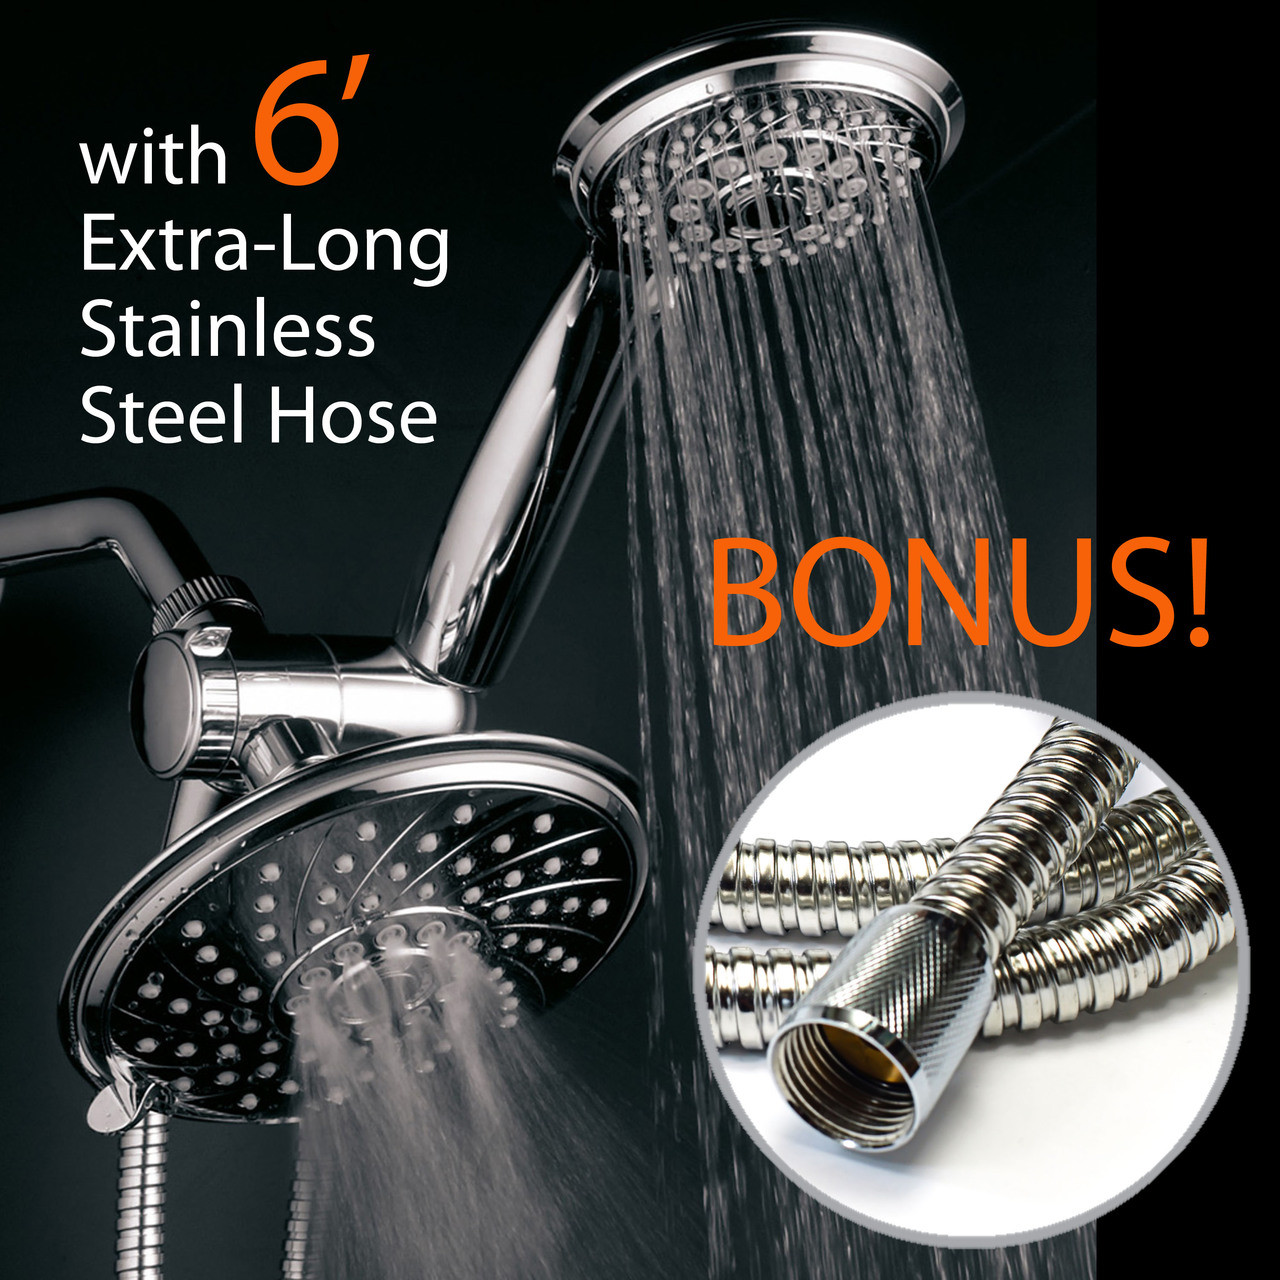 Hotel Spa 30 Setting 6 Rainfall Shower Head And Handheld Shower Dual 3 Way Shower Combo With Extra Long Premium 6 Ft Stainless Steel Shower Hose